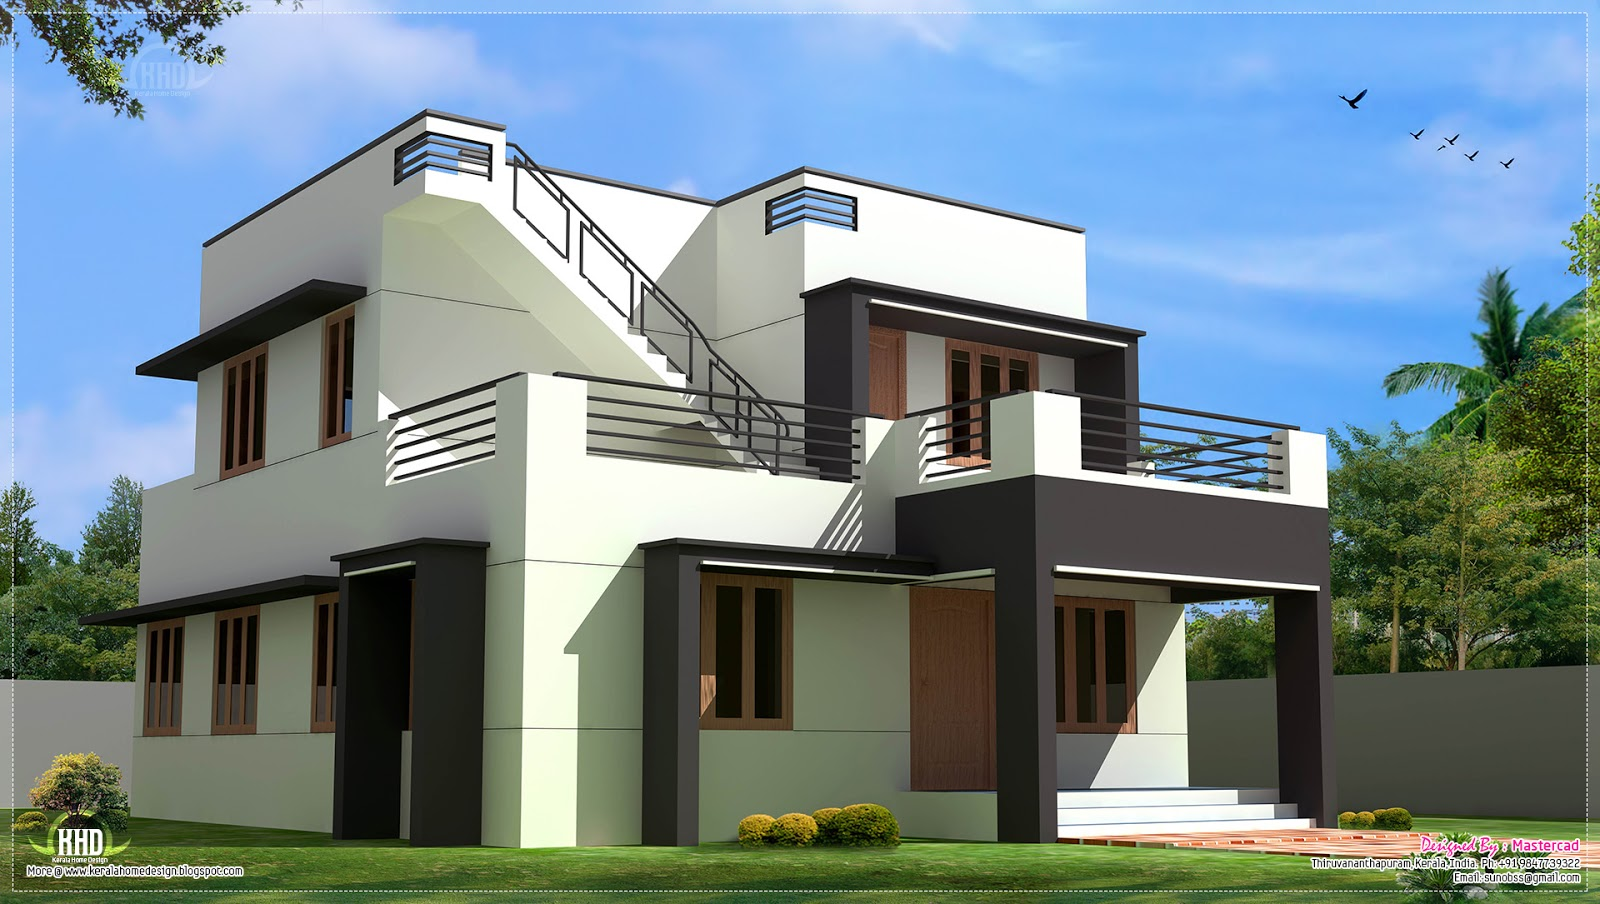 Modern house design in 1700 kerala home design for Small contemporary house plans in kerala